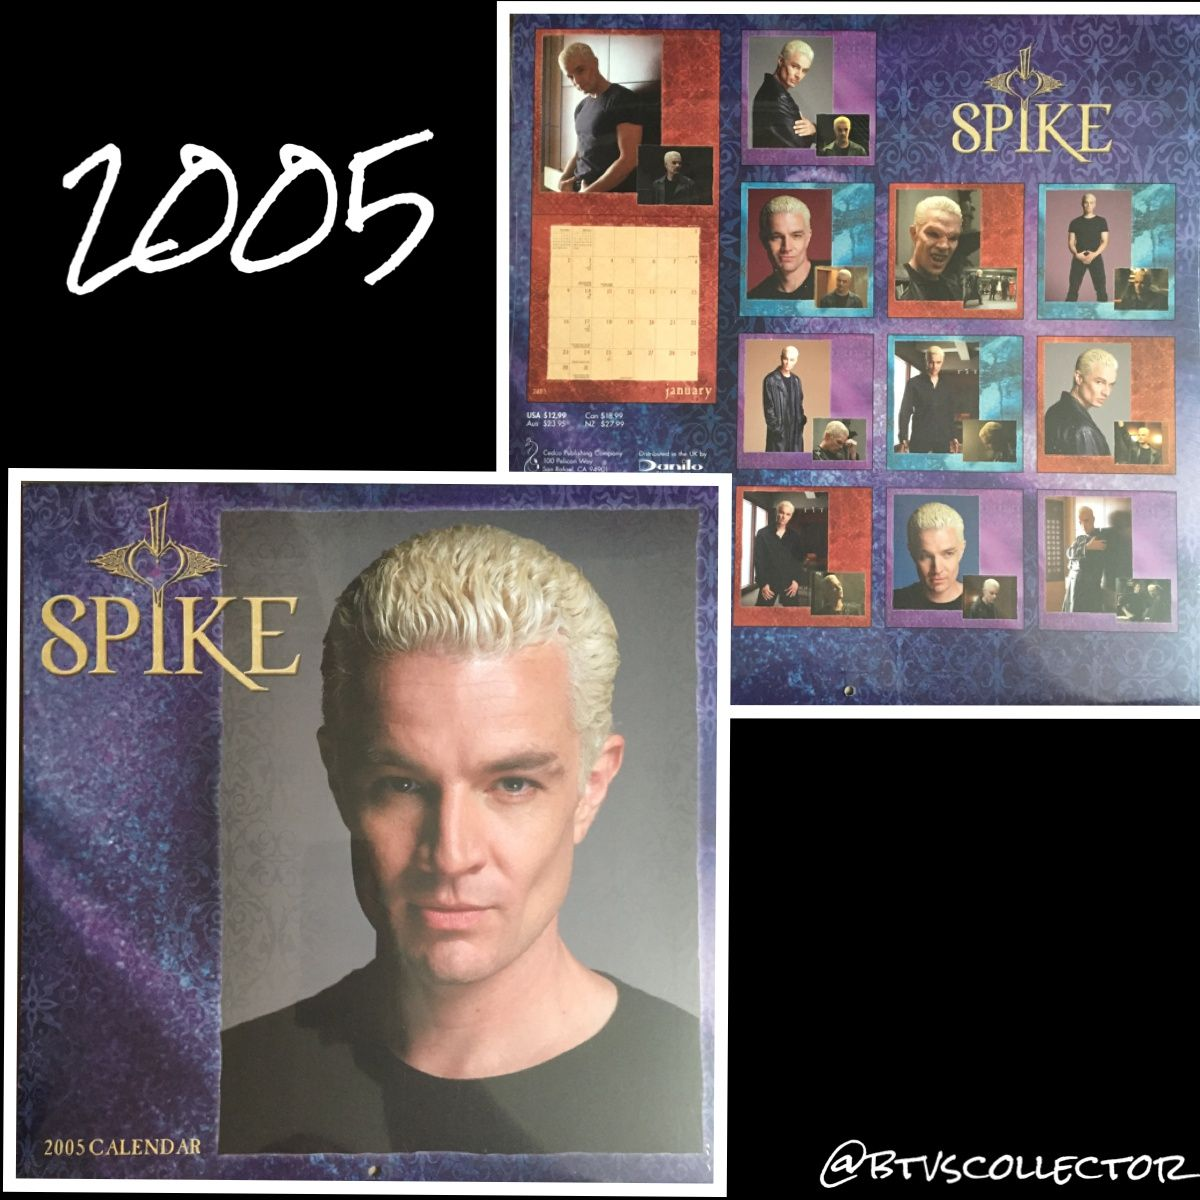 Buffy the Vampire Slayer - 2005 Spike Calendar #btvscollector #btvs #buffy #buffythevampireslayer